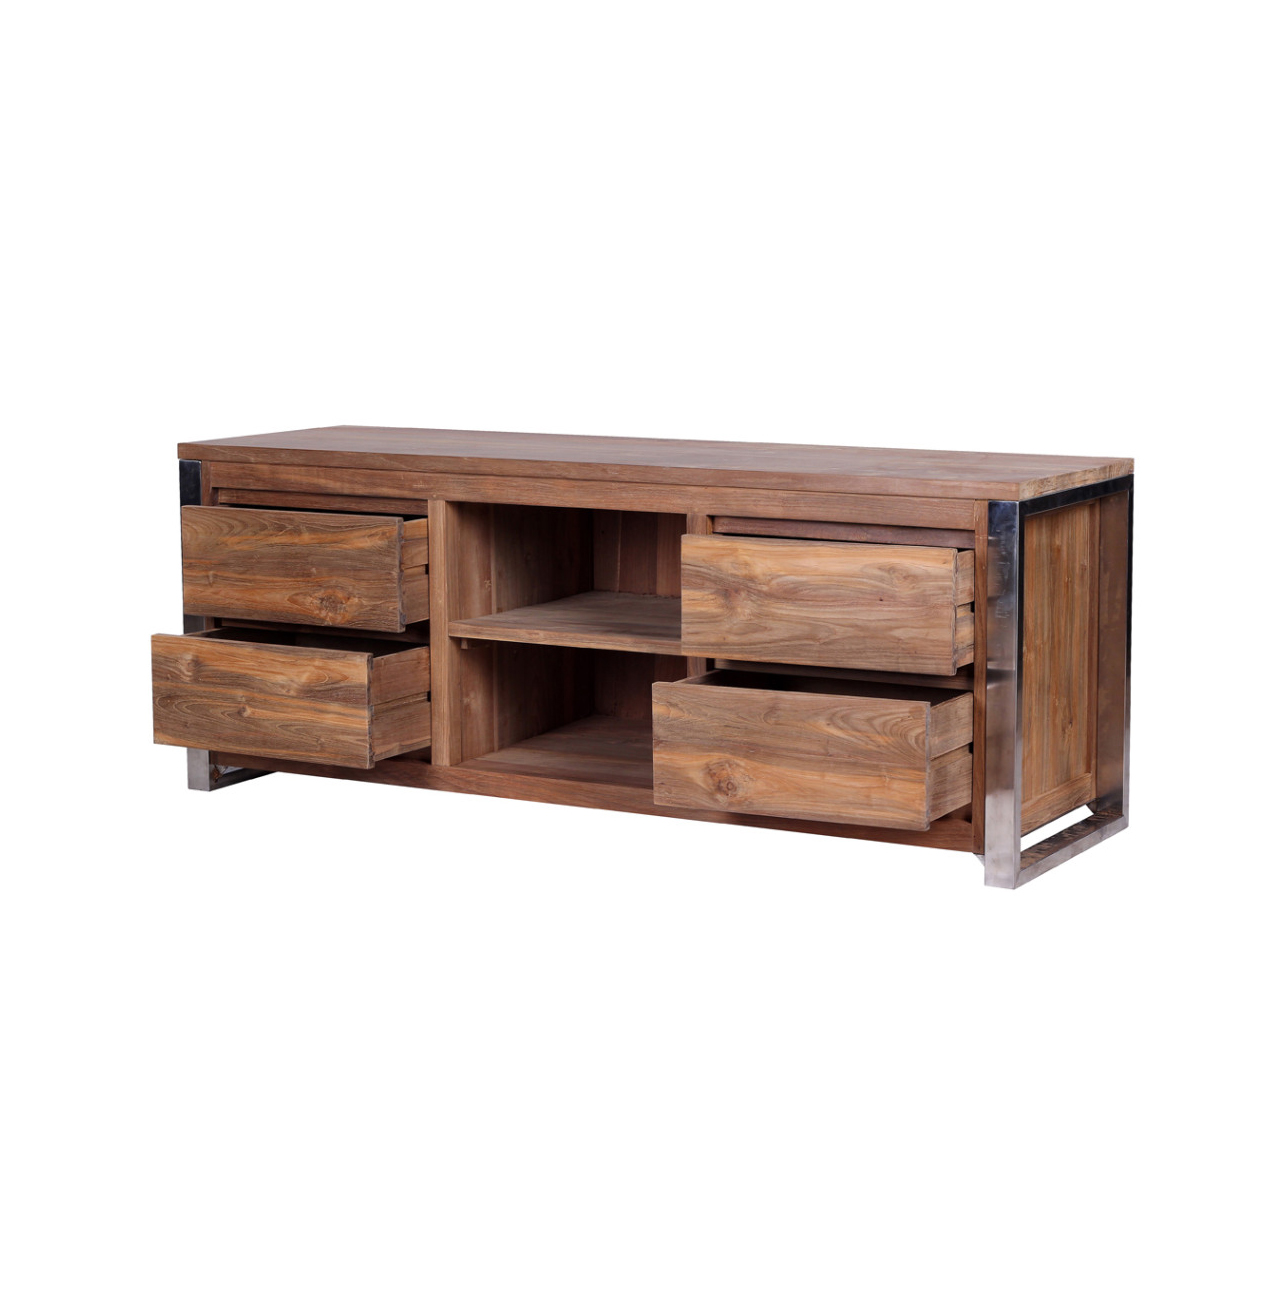 Rarem reclaimed wood tv stand Reclaimed wood furniture colorado